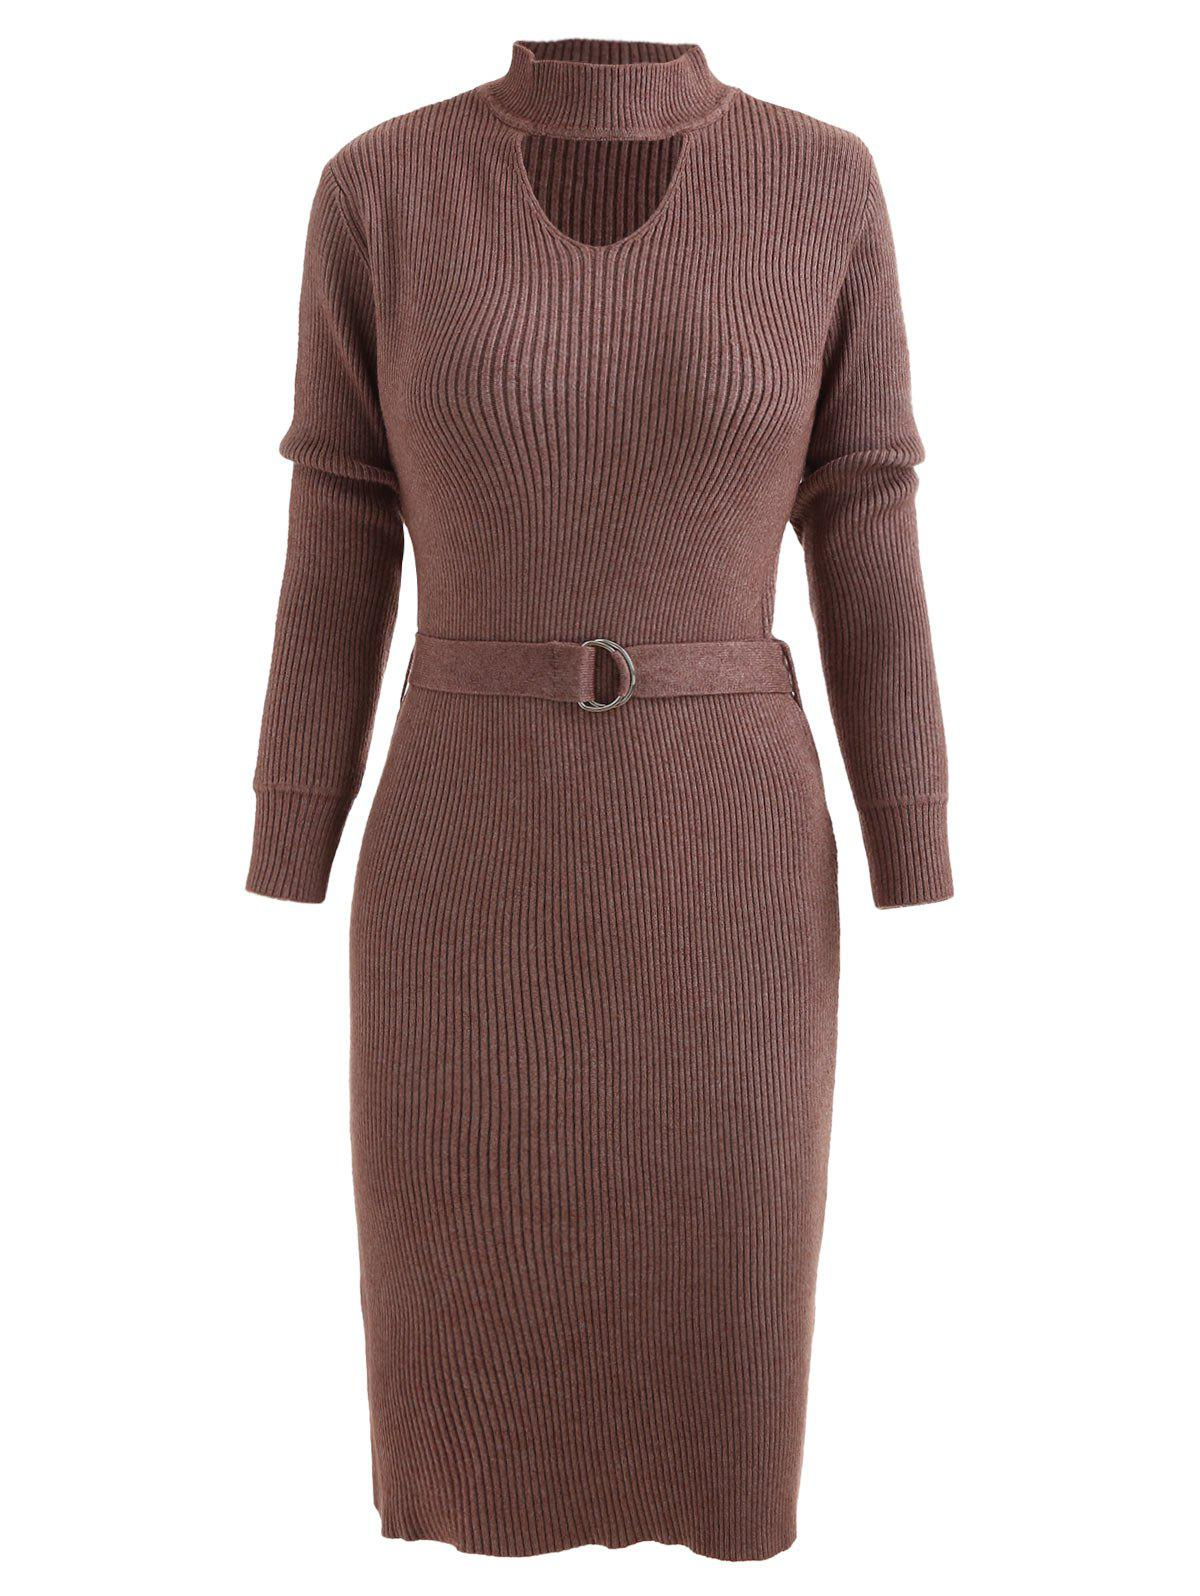 Store Cut Out Belted Mid Knitwear Dress